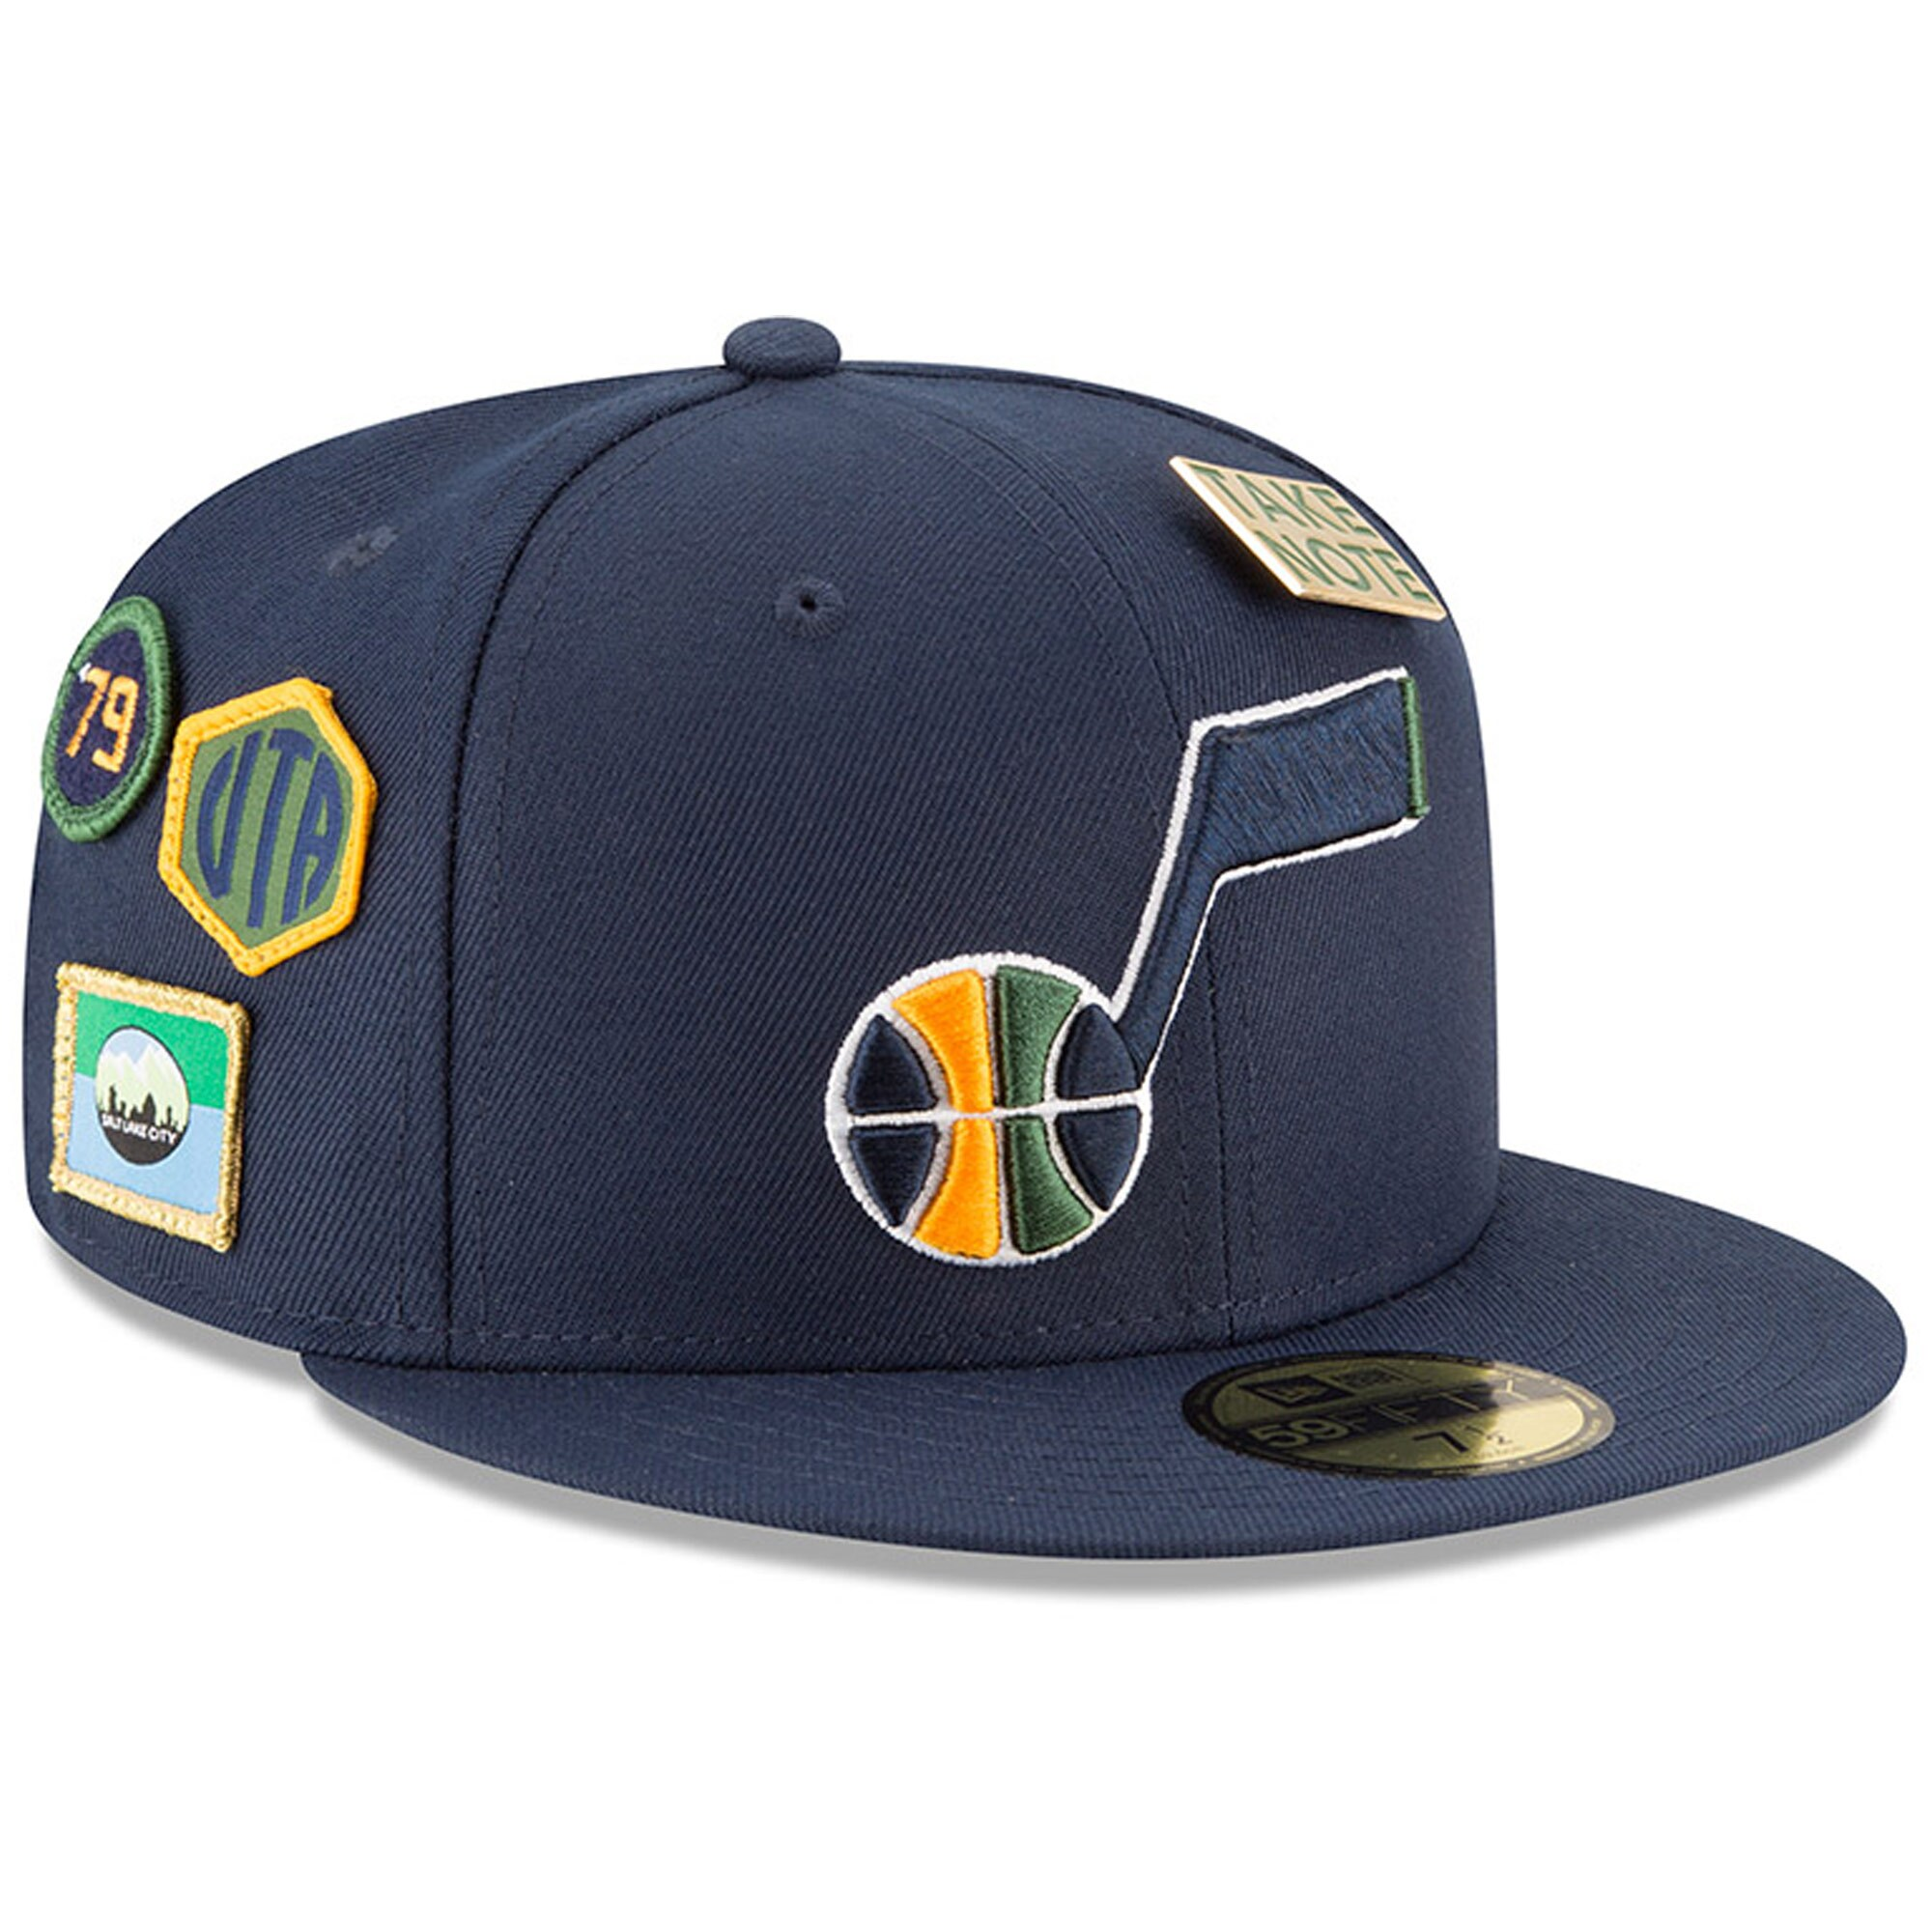 Utah Jazz New Era 2018 Draft 59FIFTY Fitted Hat - Navy